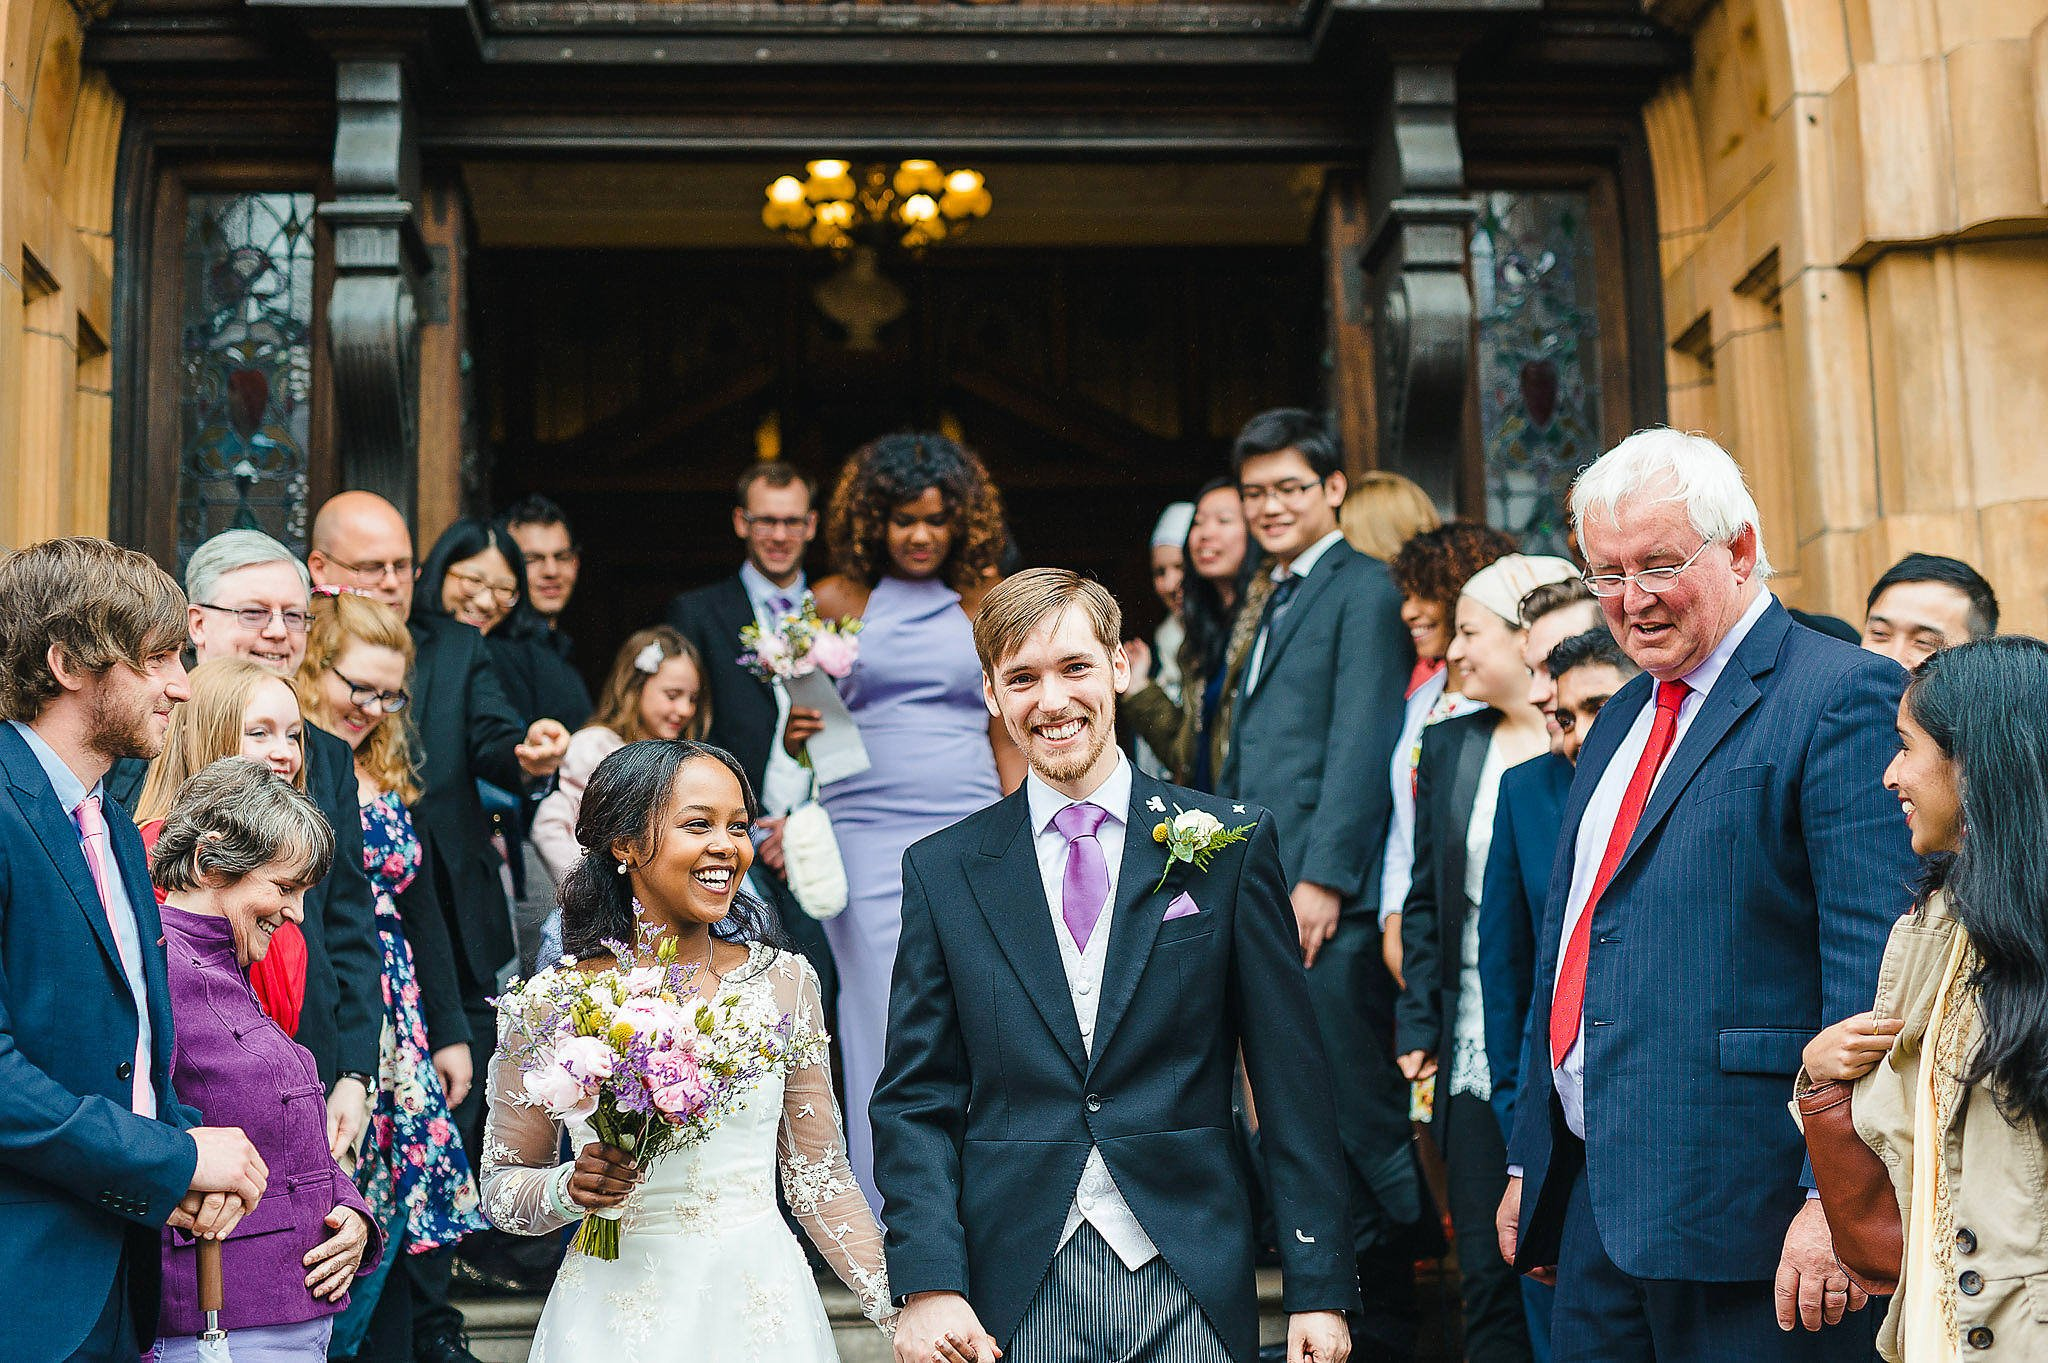 wedding photography midlands 2 - Midlands wedding photography - 2015 Review